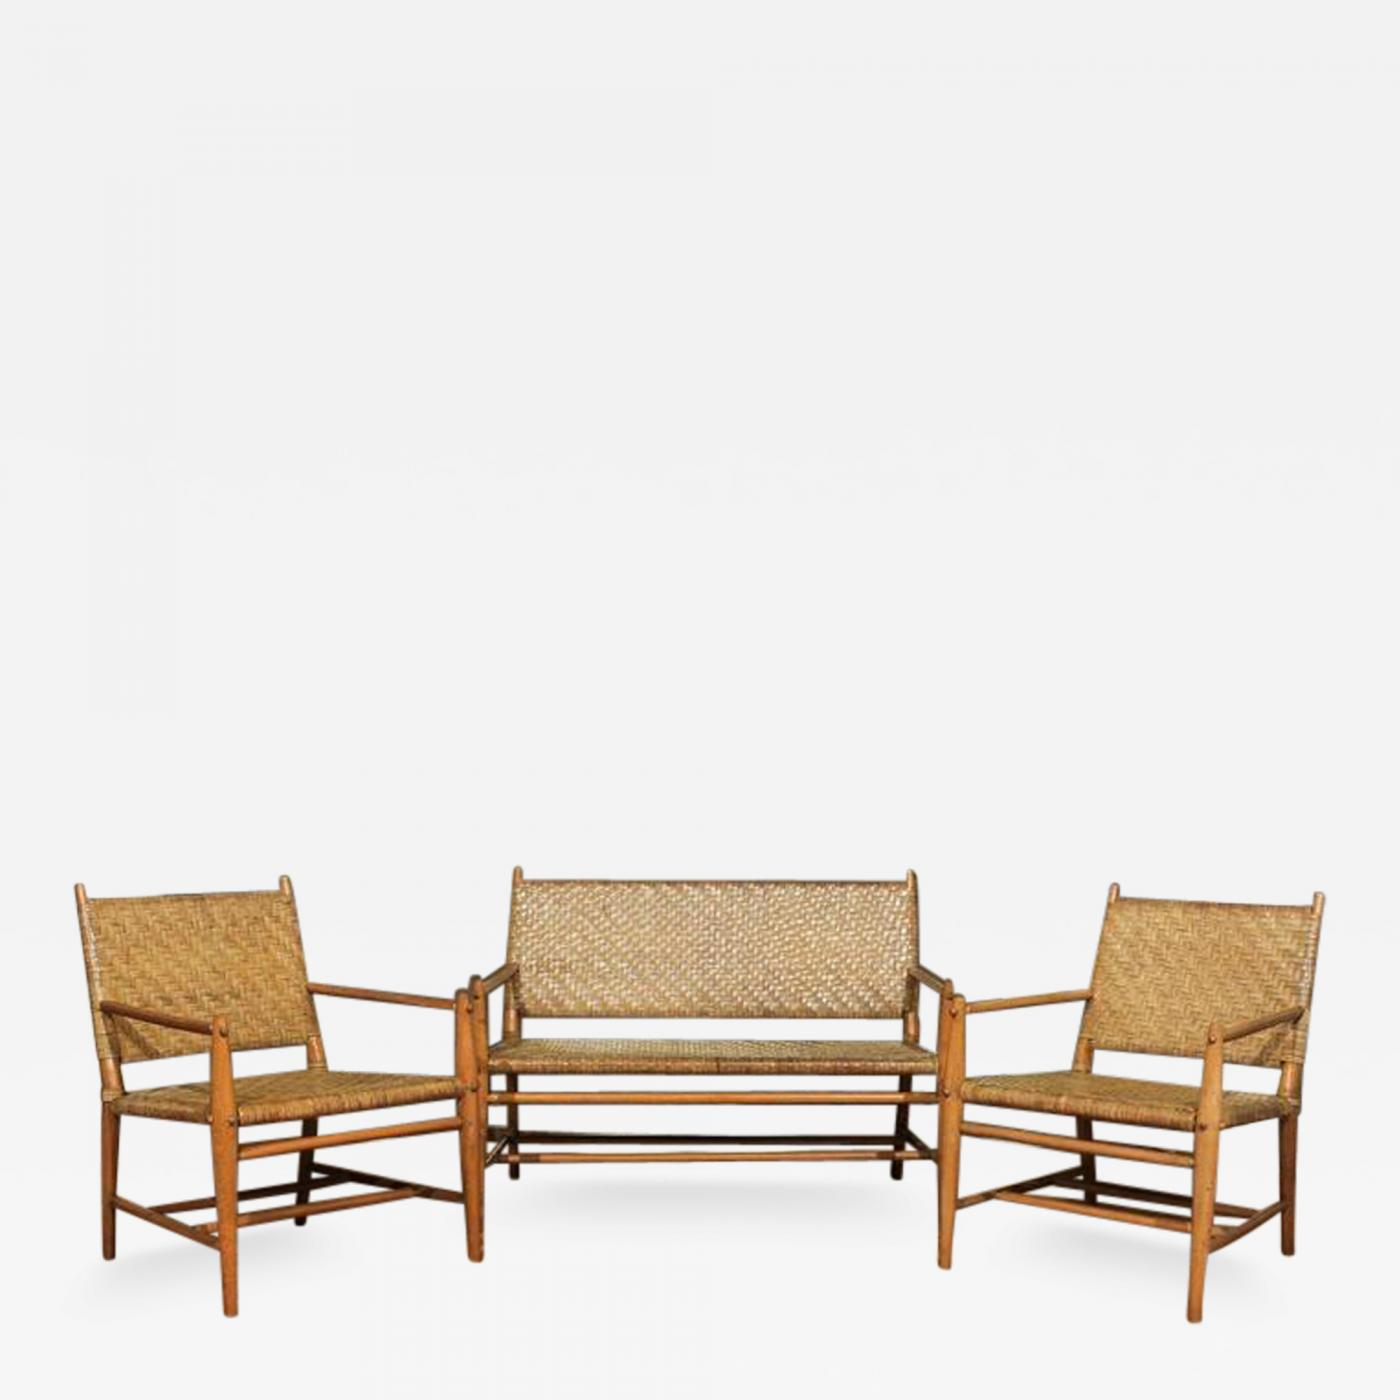 Beautiful Listings / Furniture / Seating / Lounge Chairs · Old Hickory Furniture Co  ...